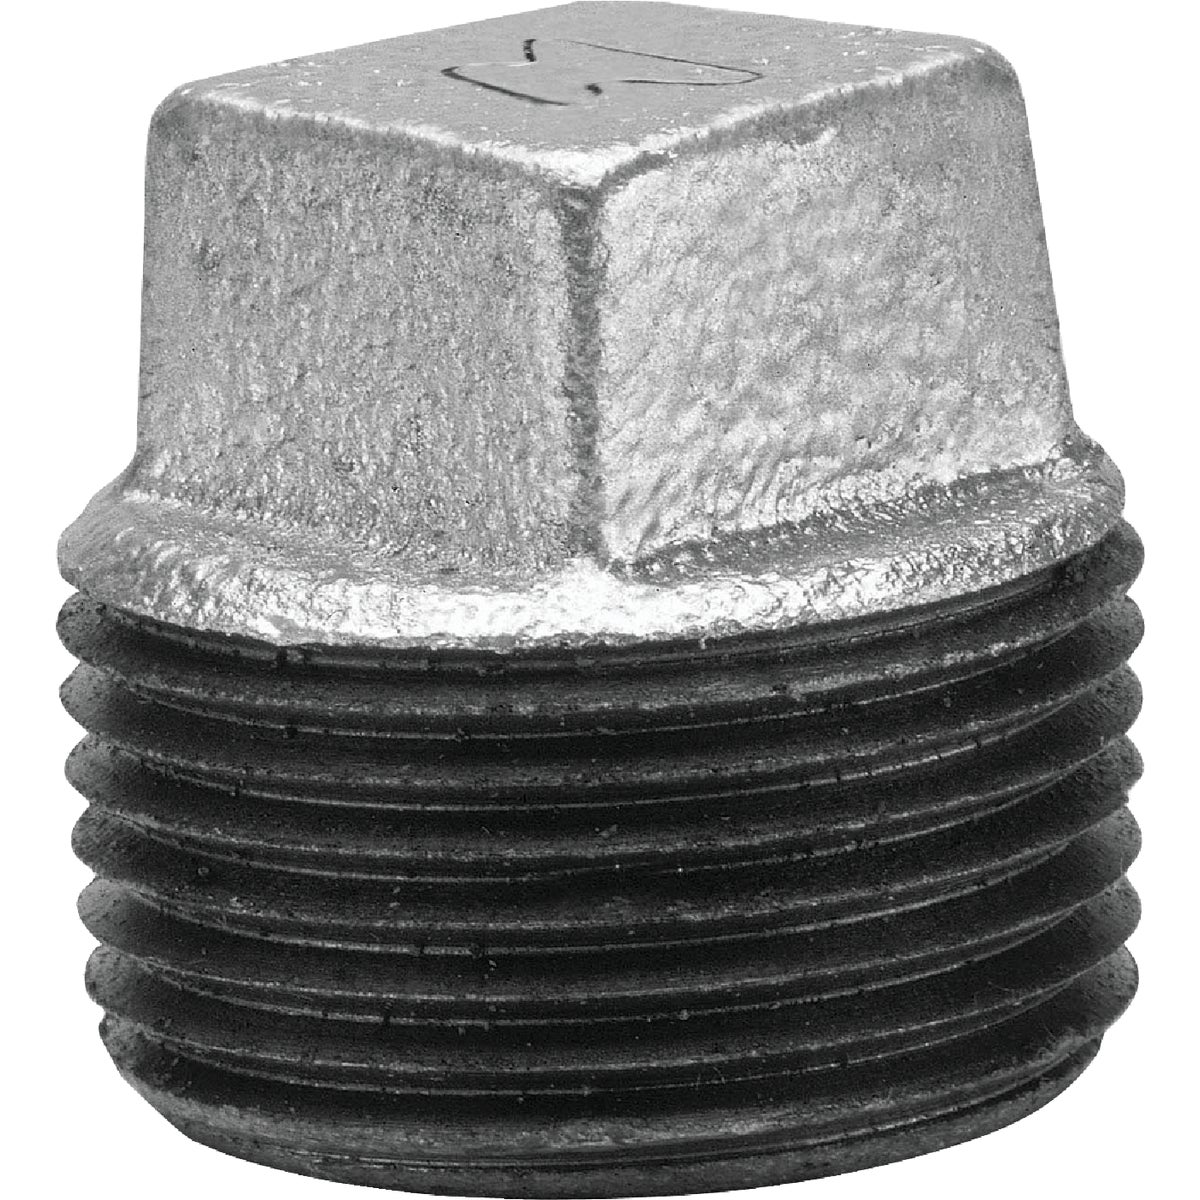 "1/8"" GALV SQ PLUG - 8700159703 by Anvil International"